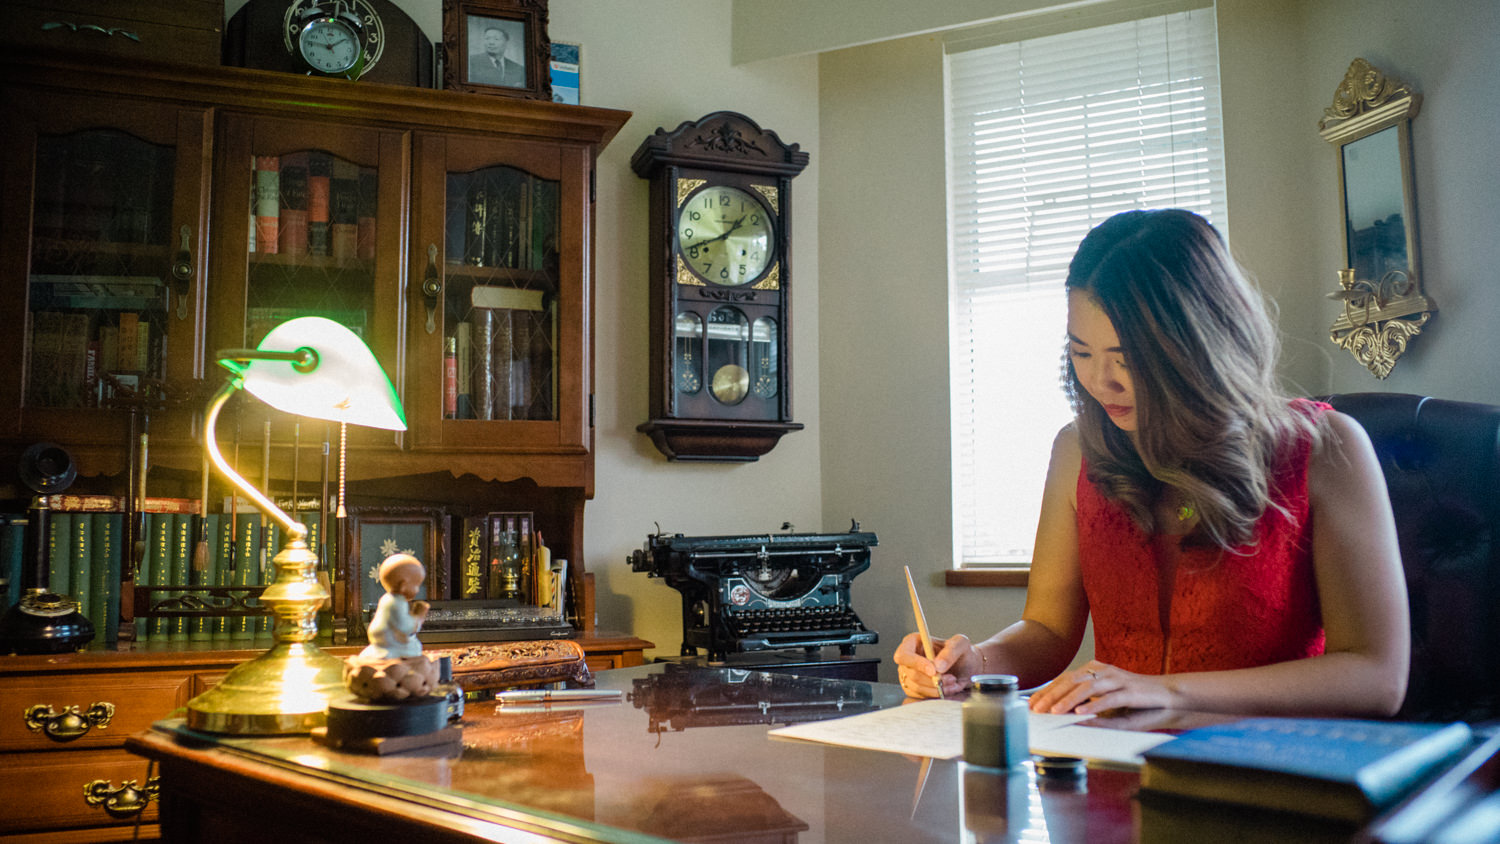 Our story begins with Kat writing a letter…